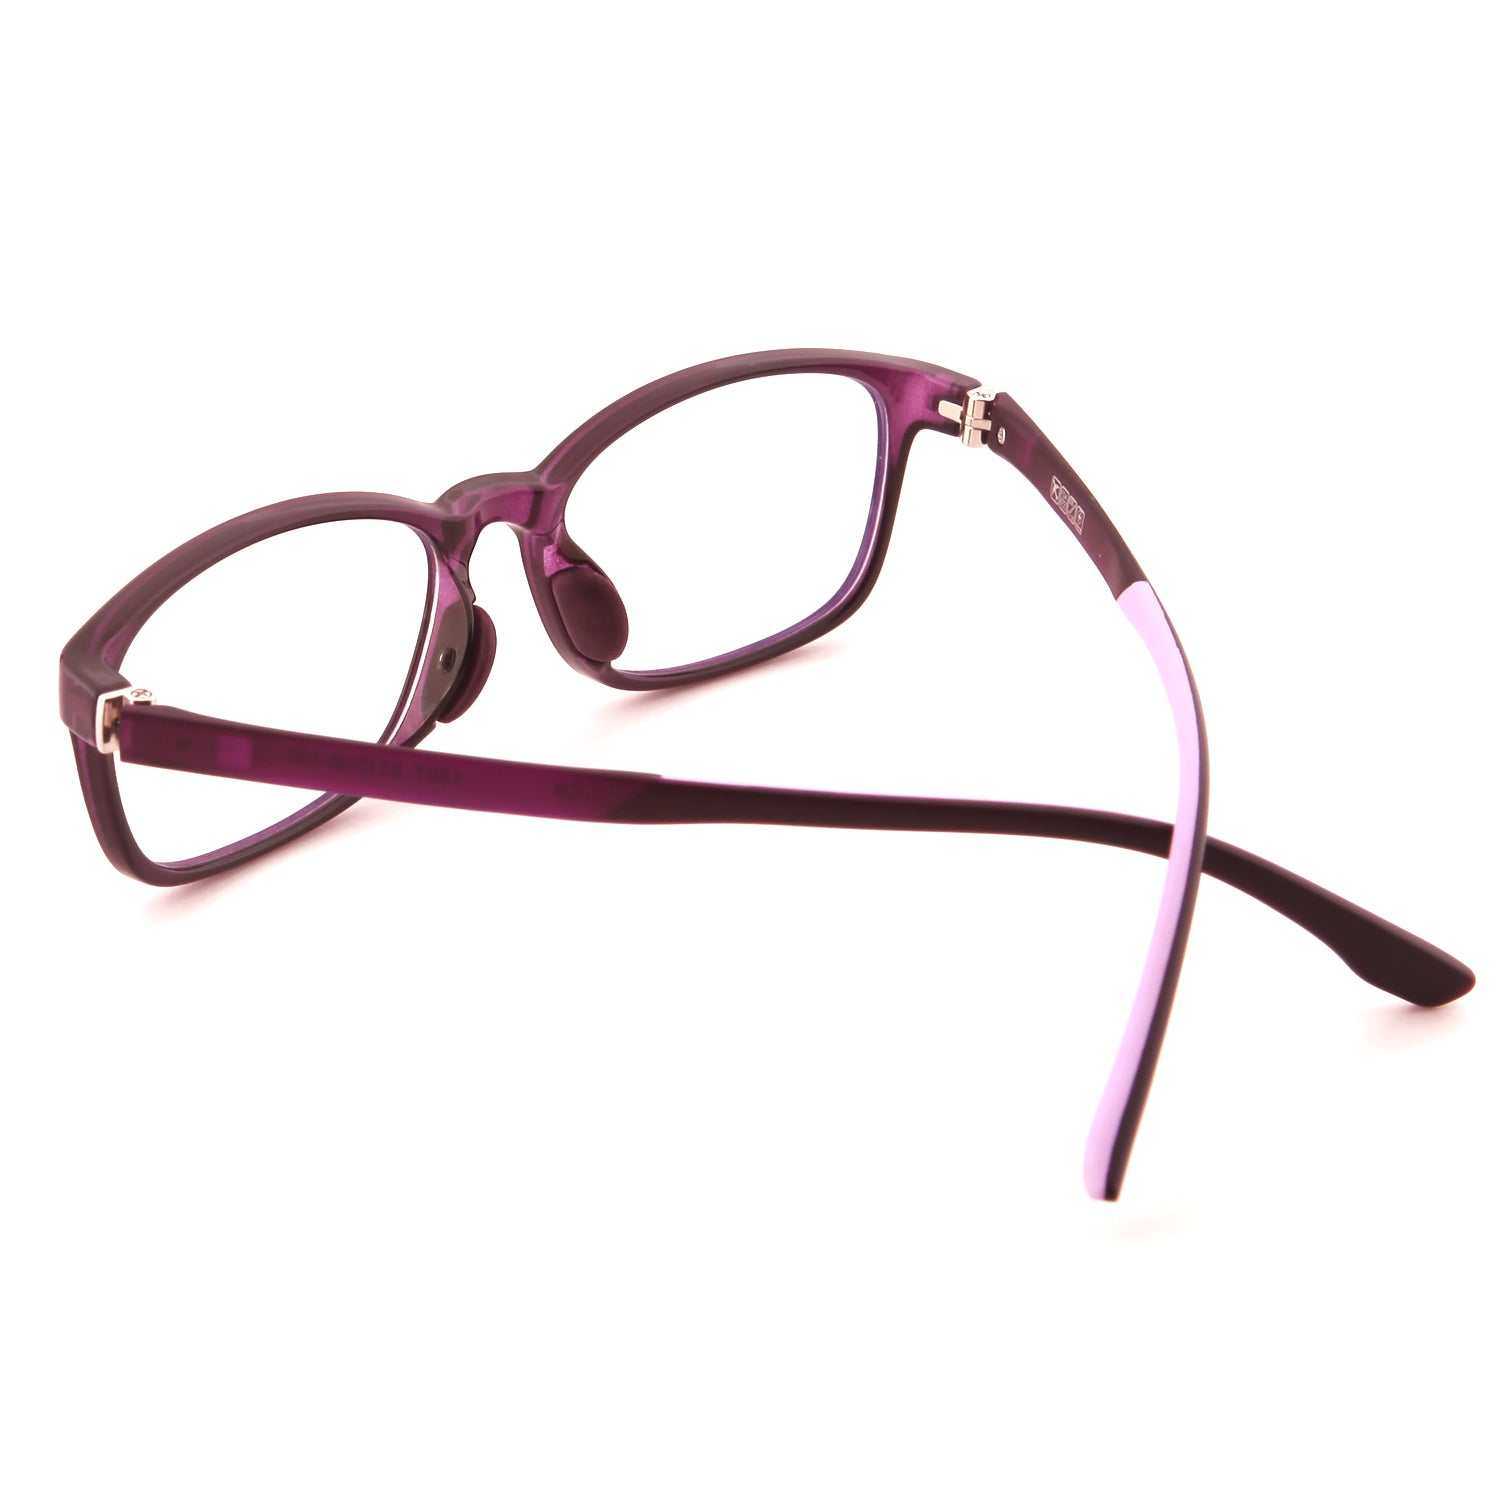 Mind BridgeBig Kids and Teens Computer Glasses (Purple) - CrystalHill